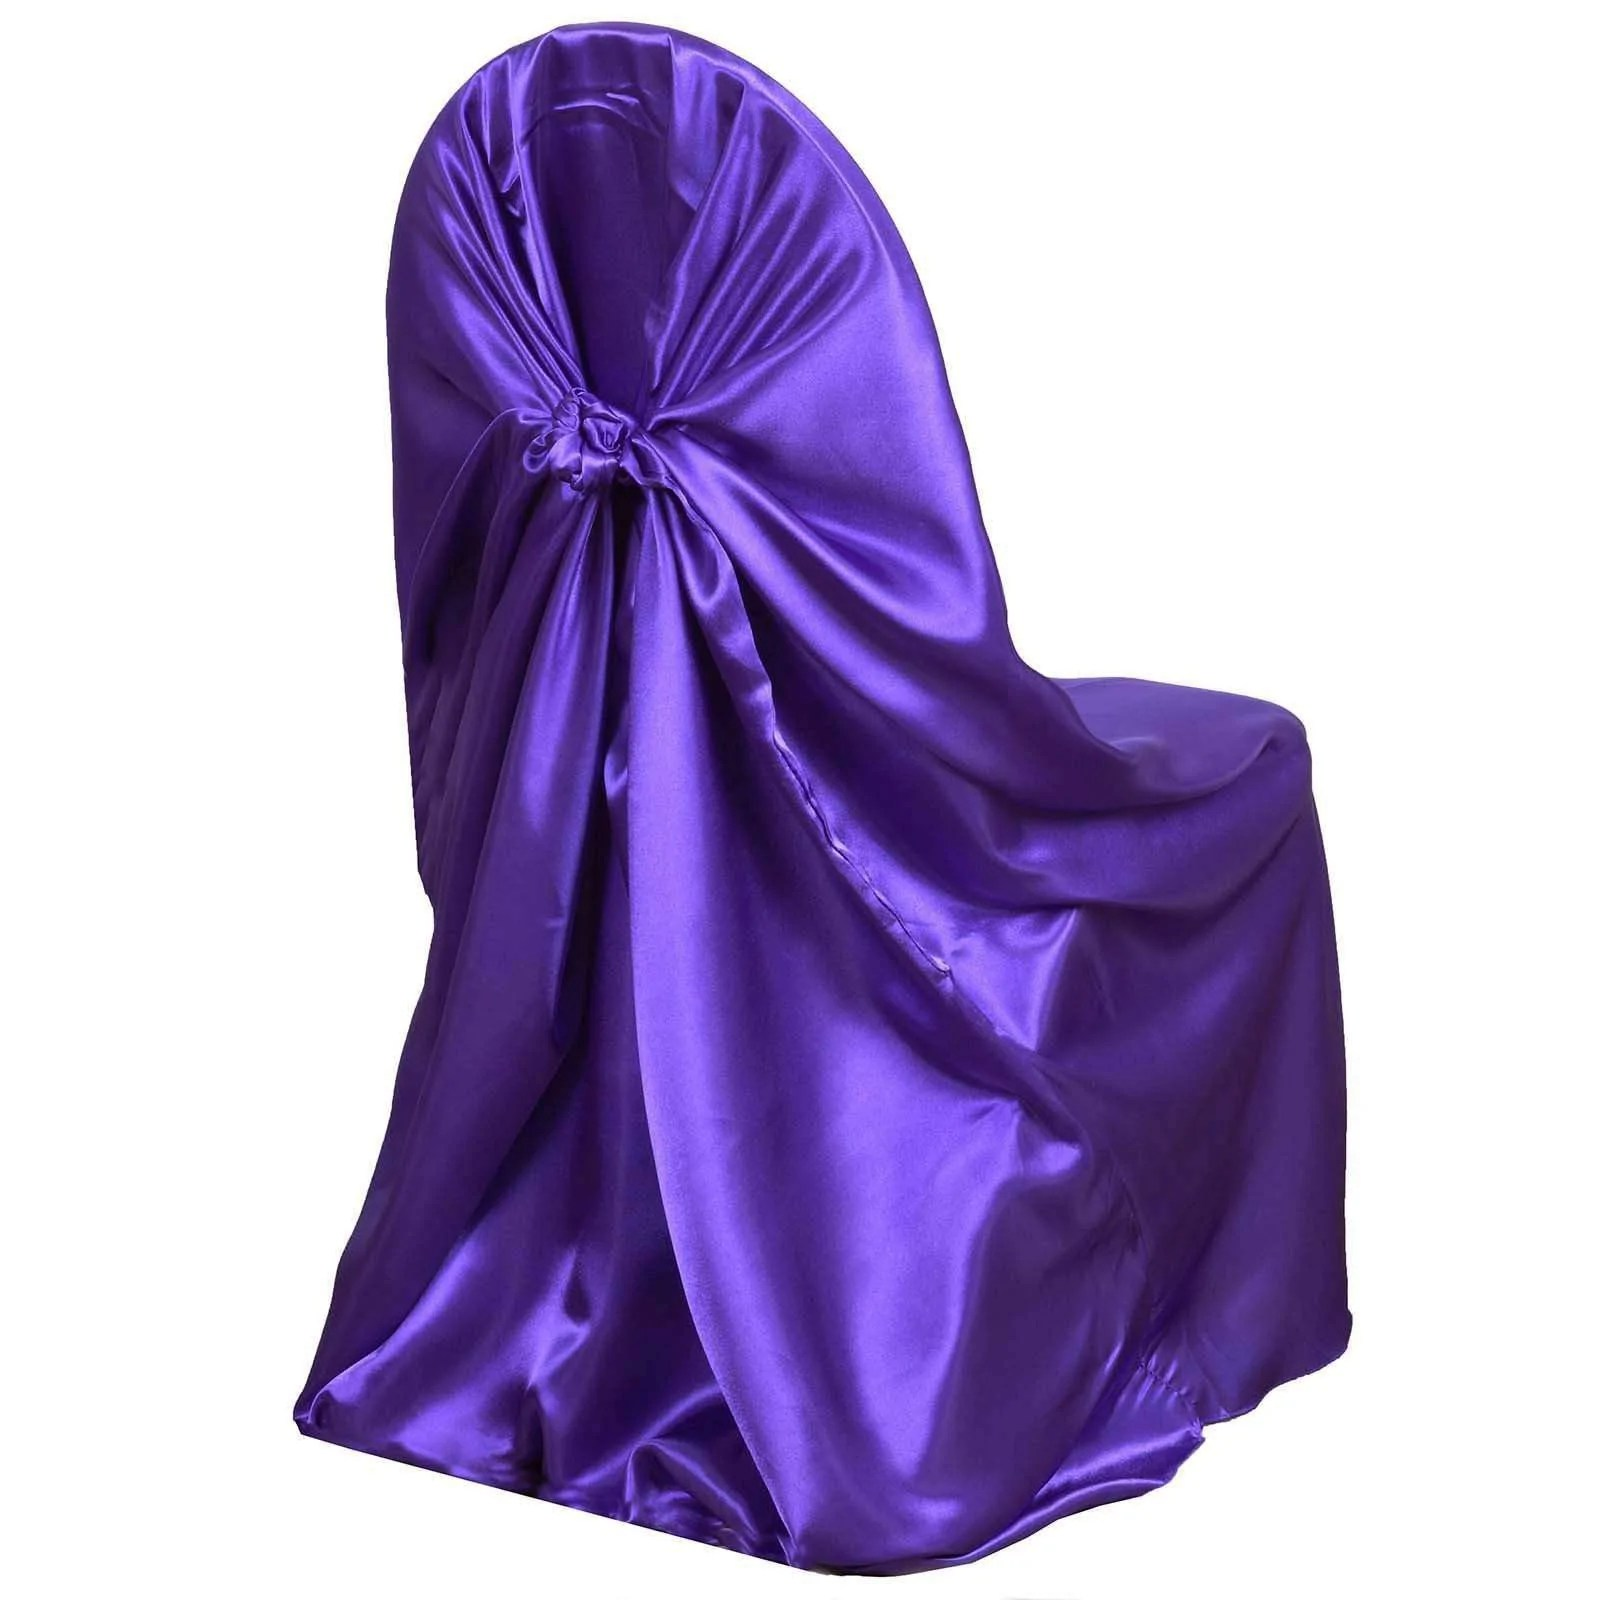 universal wedding chair covers sale wingback dining room chairs purple satin cover for banquet party decor